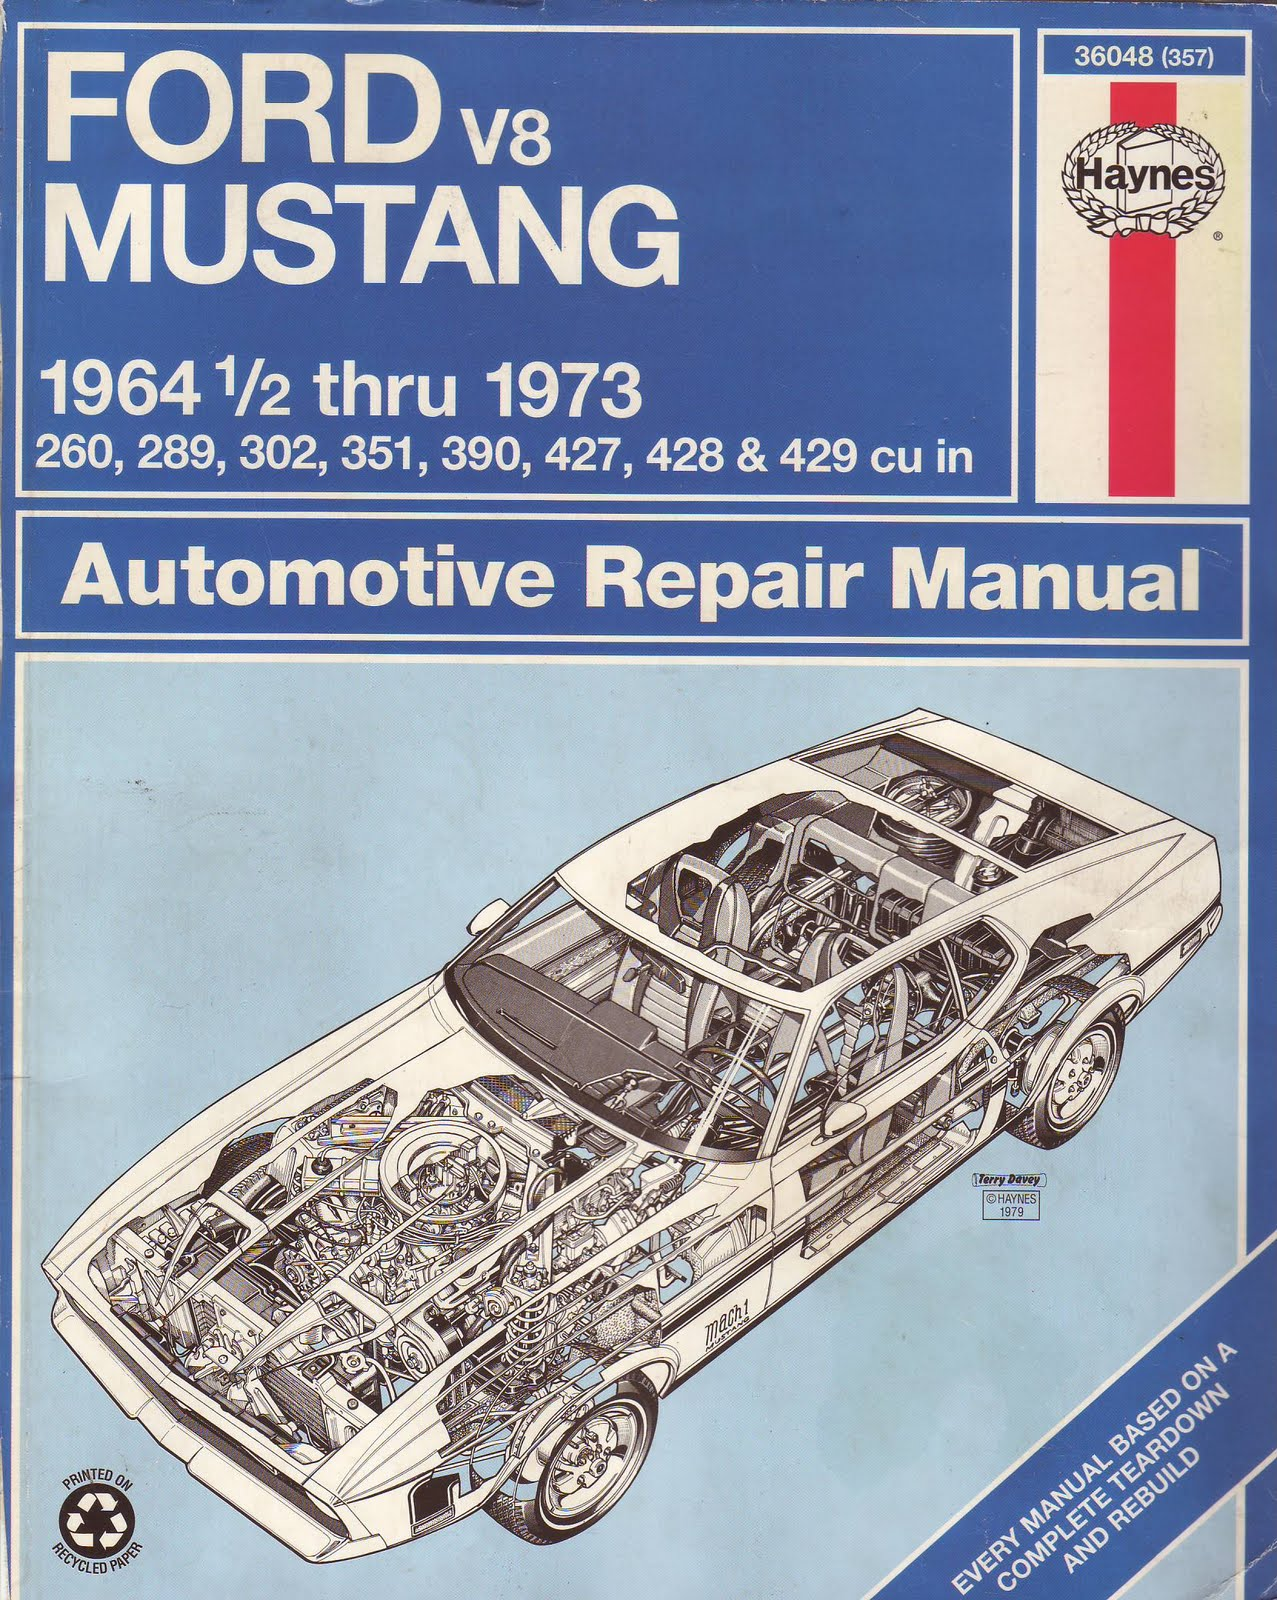 Service manual For mustang 940